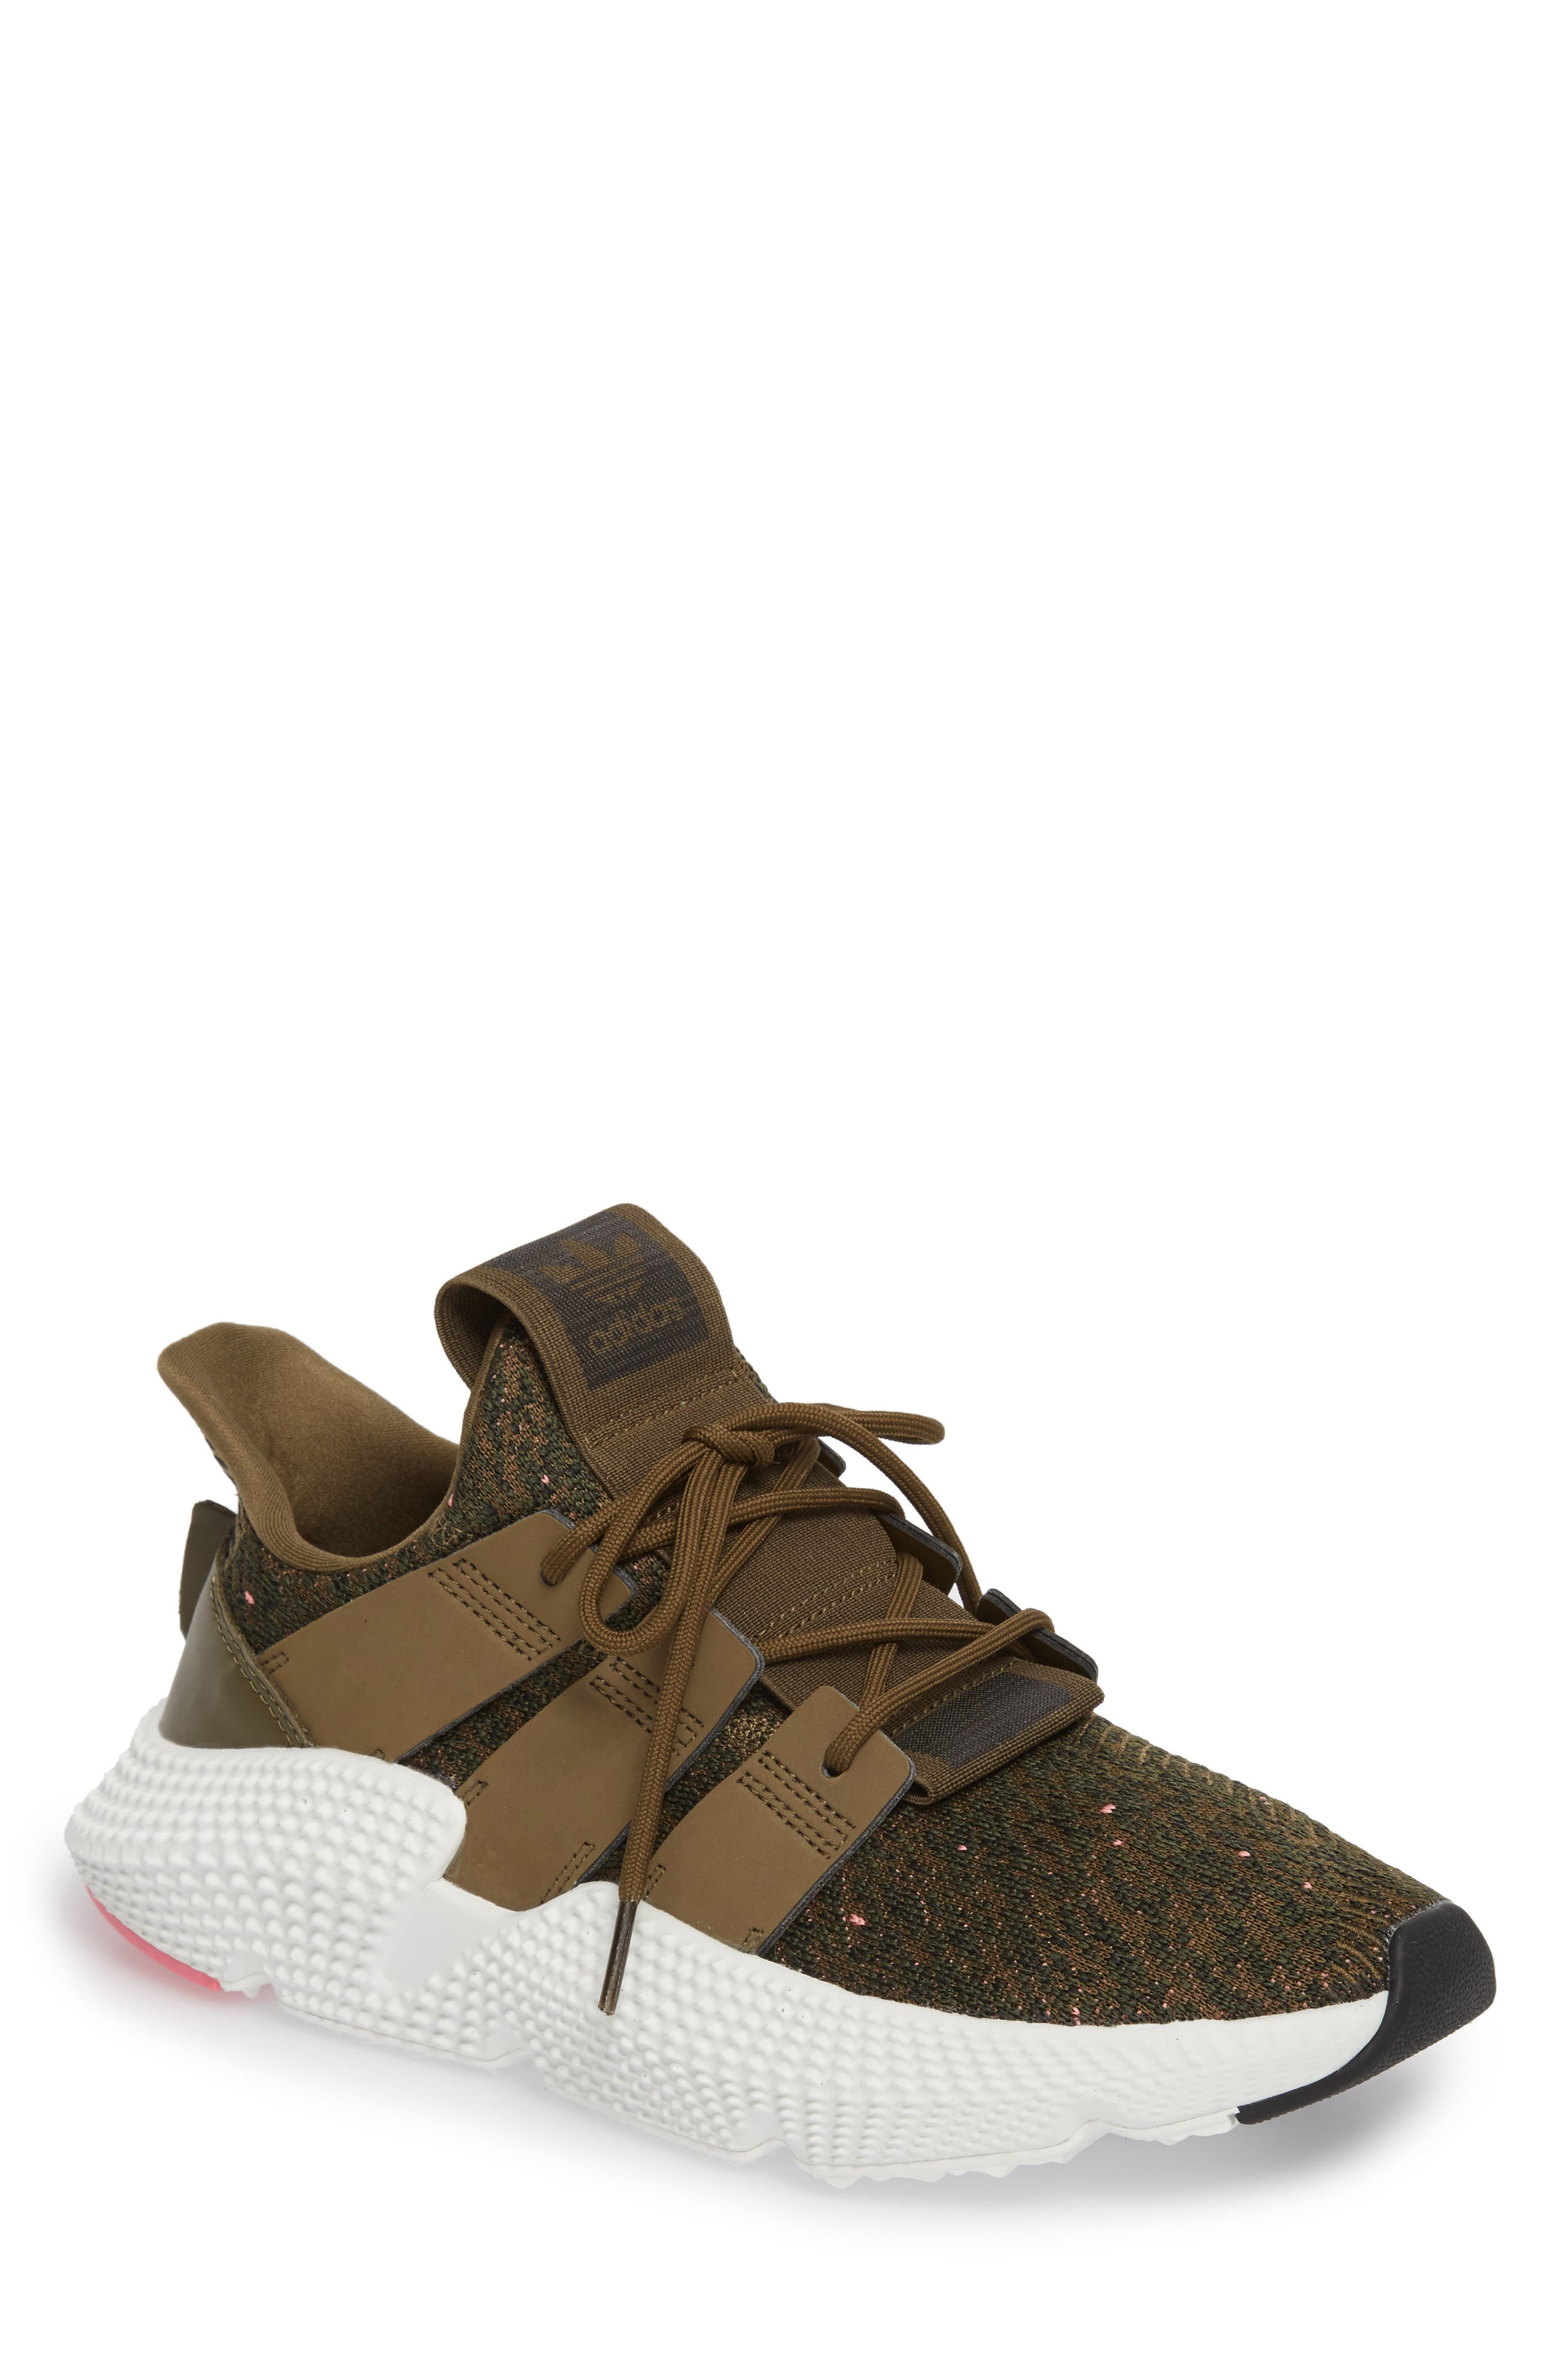 Prophere Sneaker,                         Main,                         color, TRACE OLIVE/ CHALK PINK